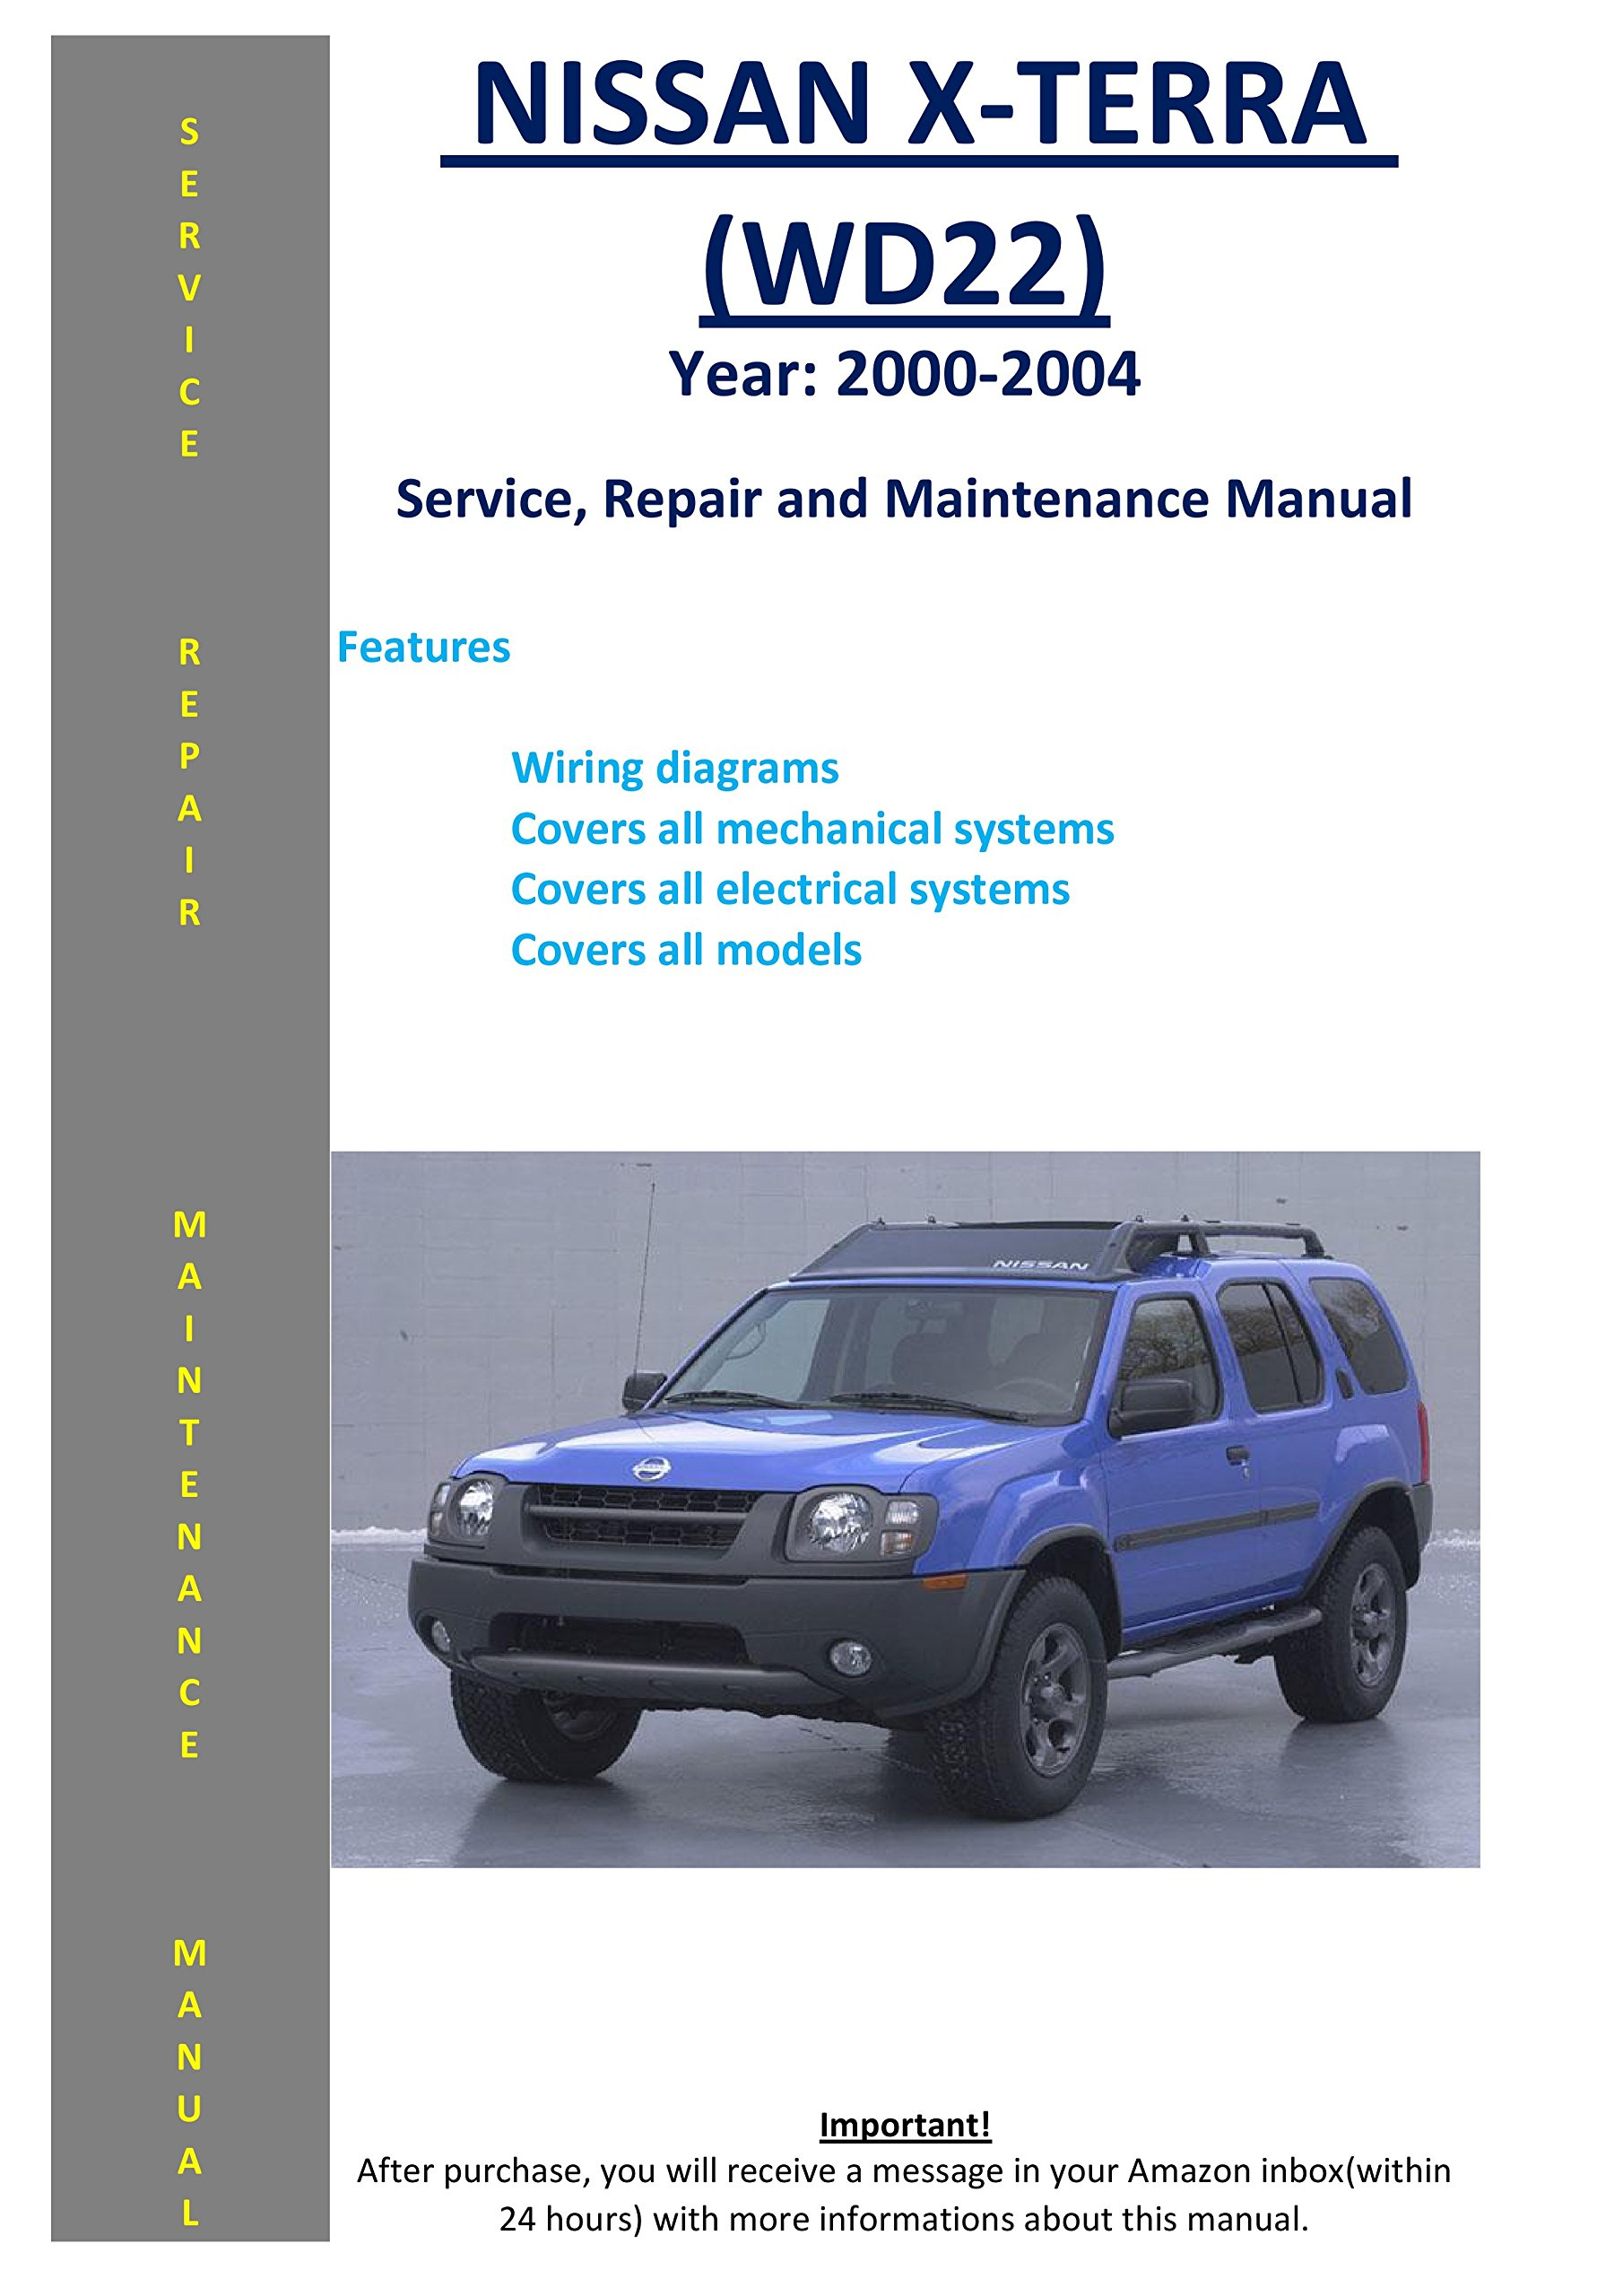 Nissan Xterra X-terra Wd22 2000 - 2004 Service Repair Workshop Maintenance  Manual: SoftAuto Manuals: 5422363545540: Amazon.com: Books